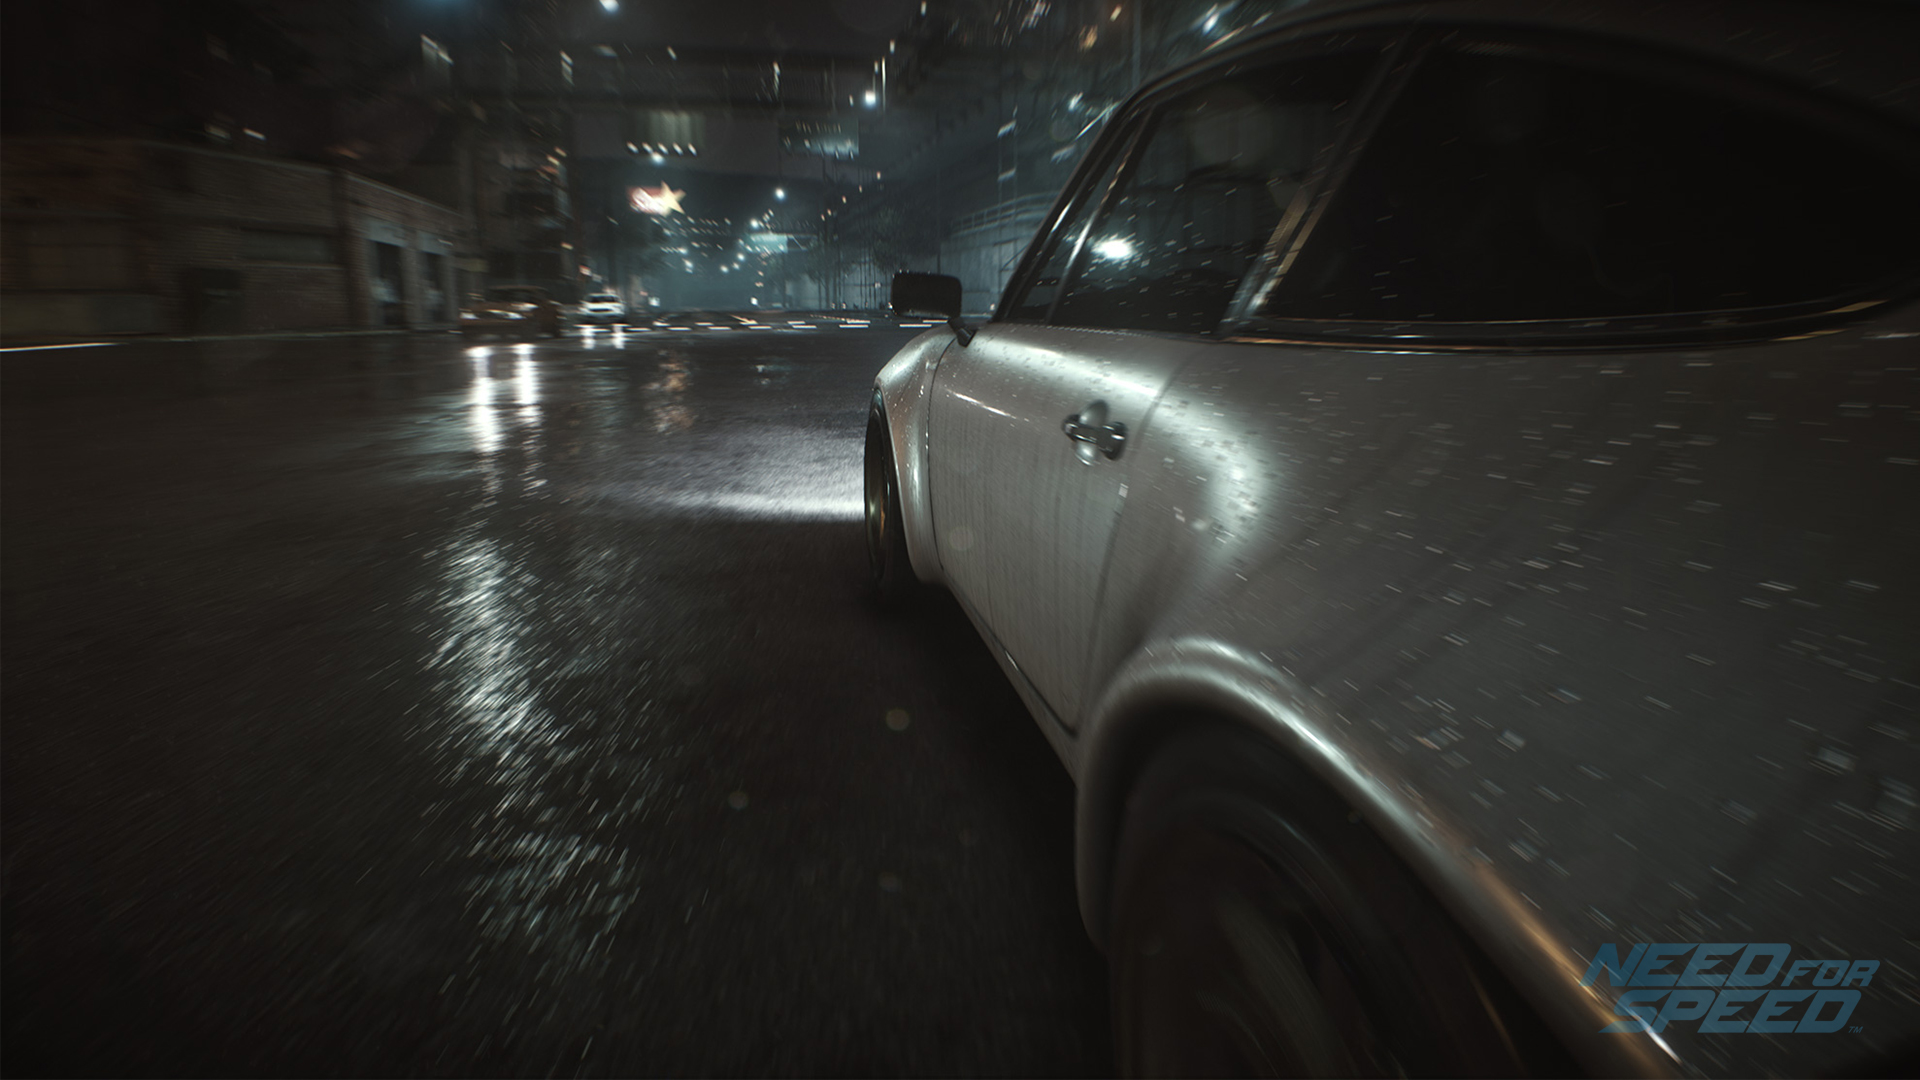 Need for speed 2015 hd wallpaper background image 1920x1080 id 603357 wallpaper abyss - Speed wallpaper ...